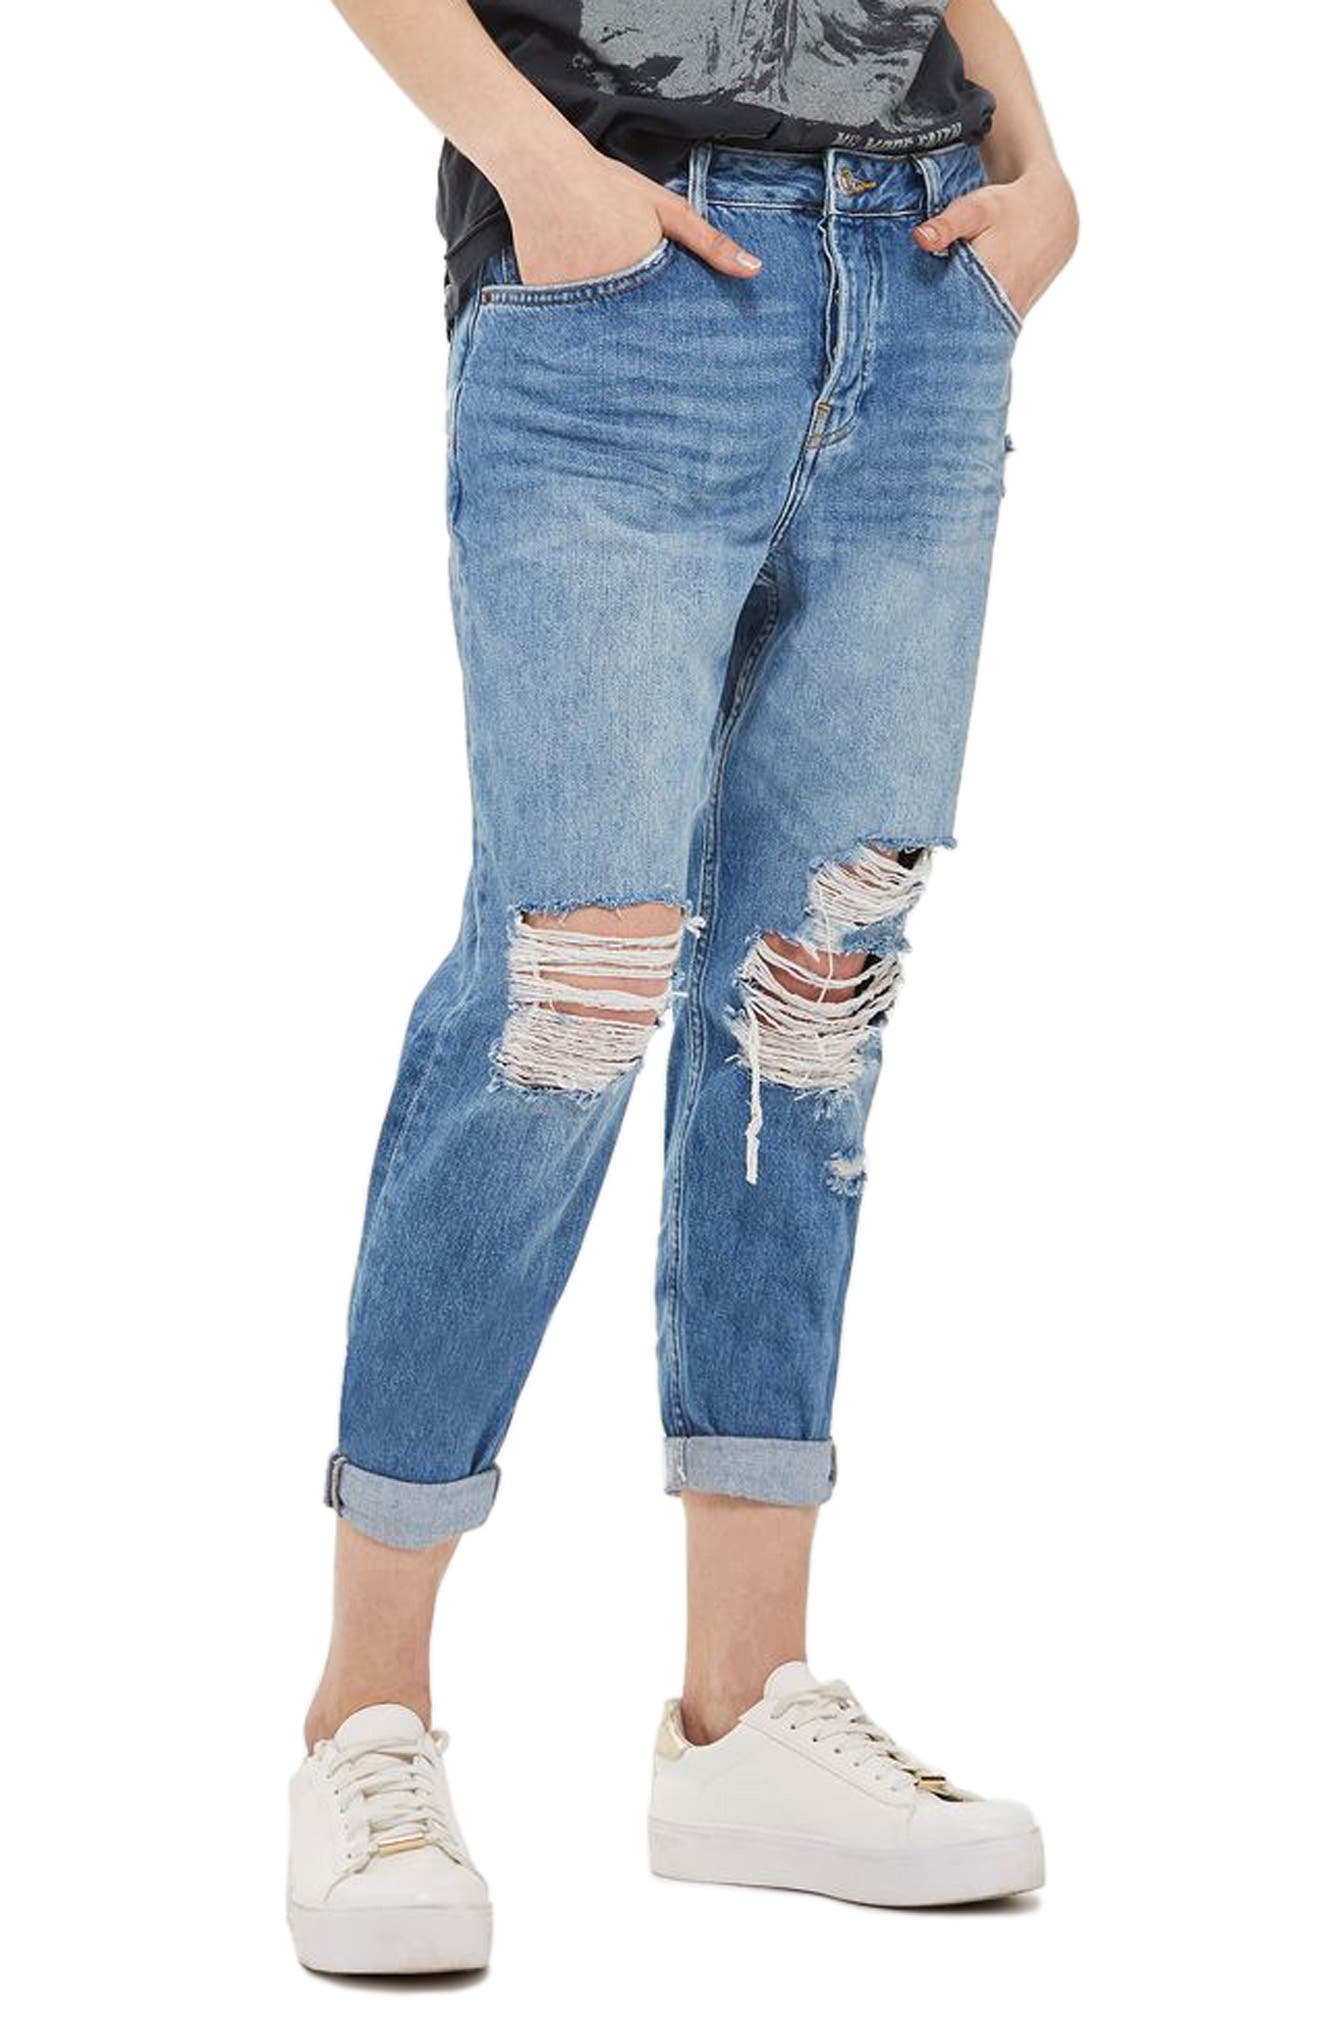 Alternate Image 1 Selected - Topshop Hayden Ripped Boyfriend Jeans (Petite)